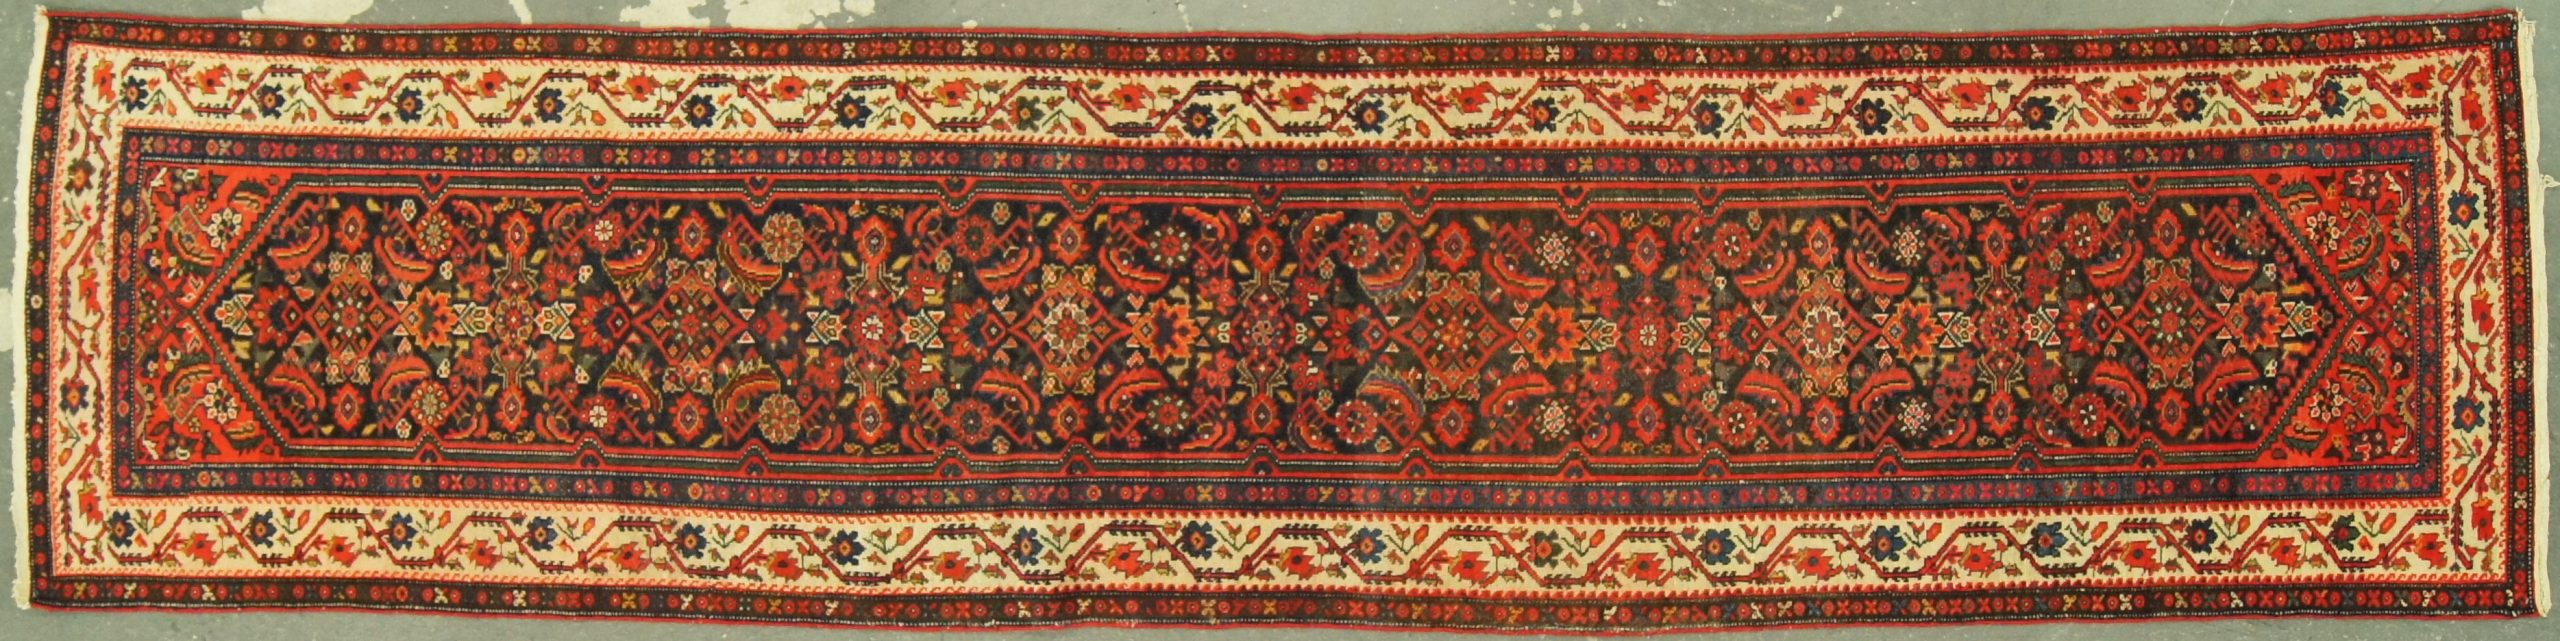 Antique 1940s Malayer - Rug